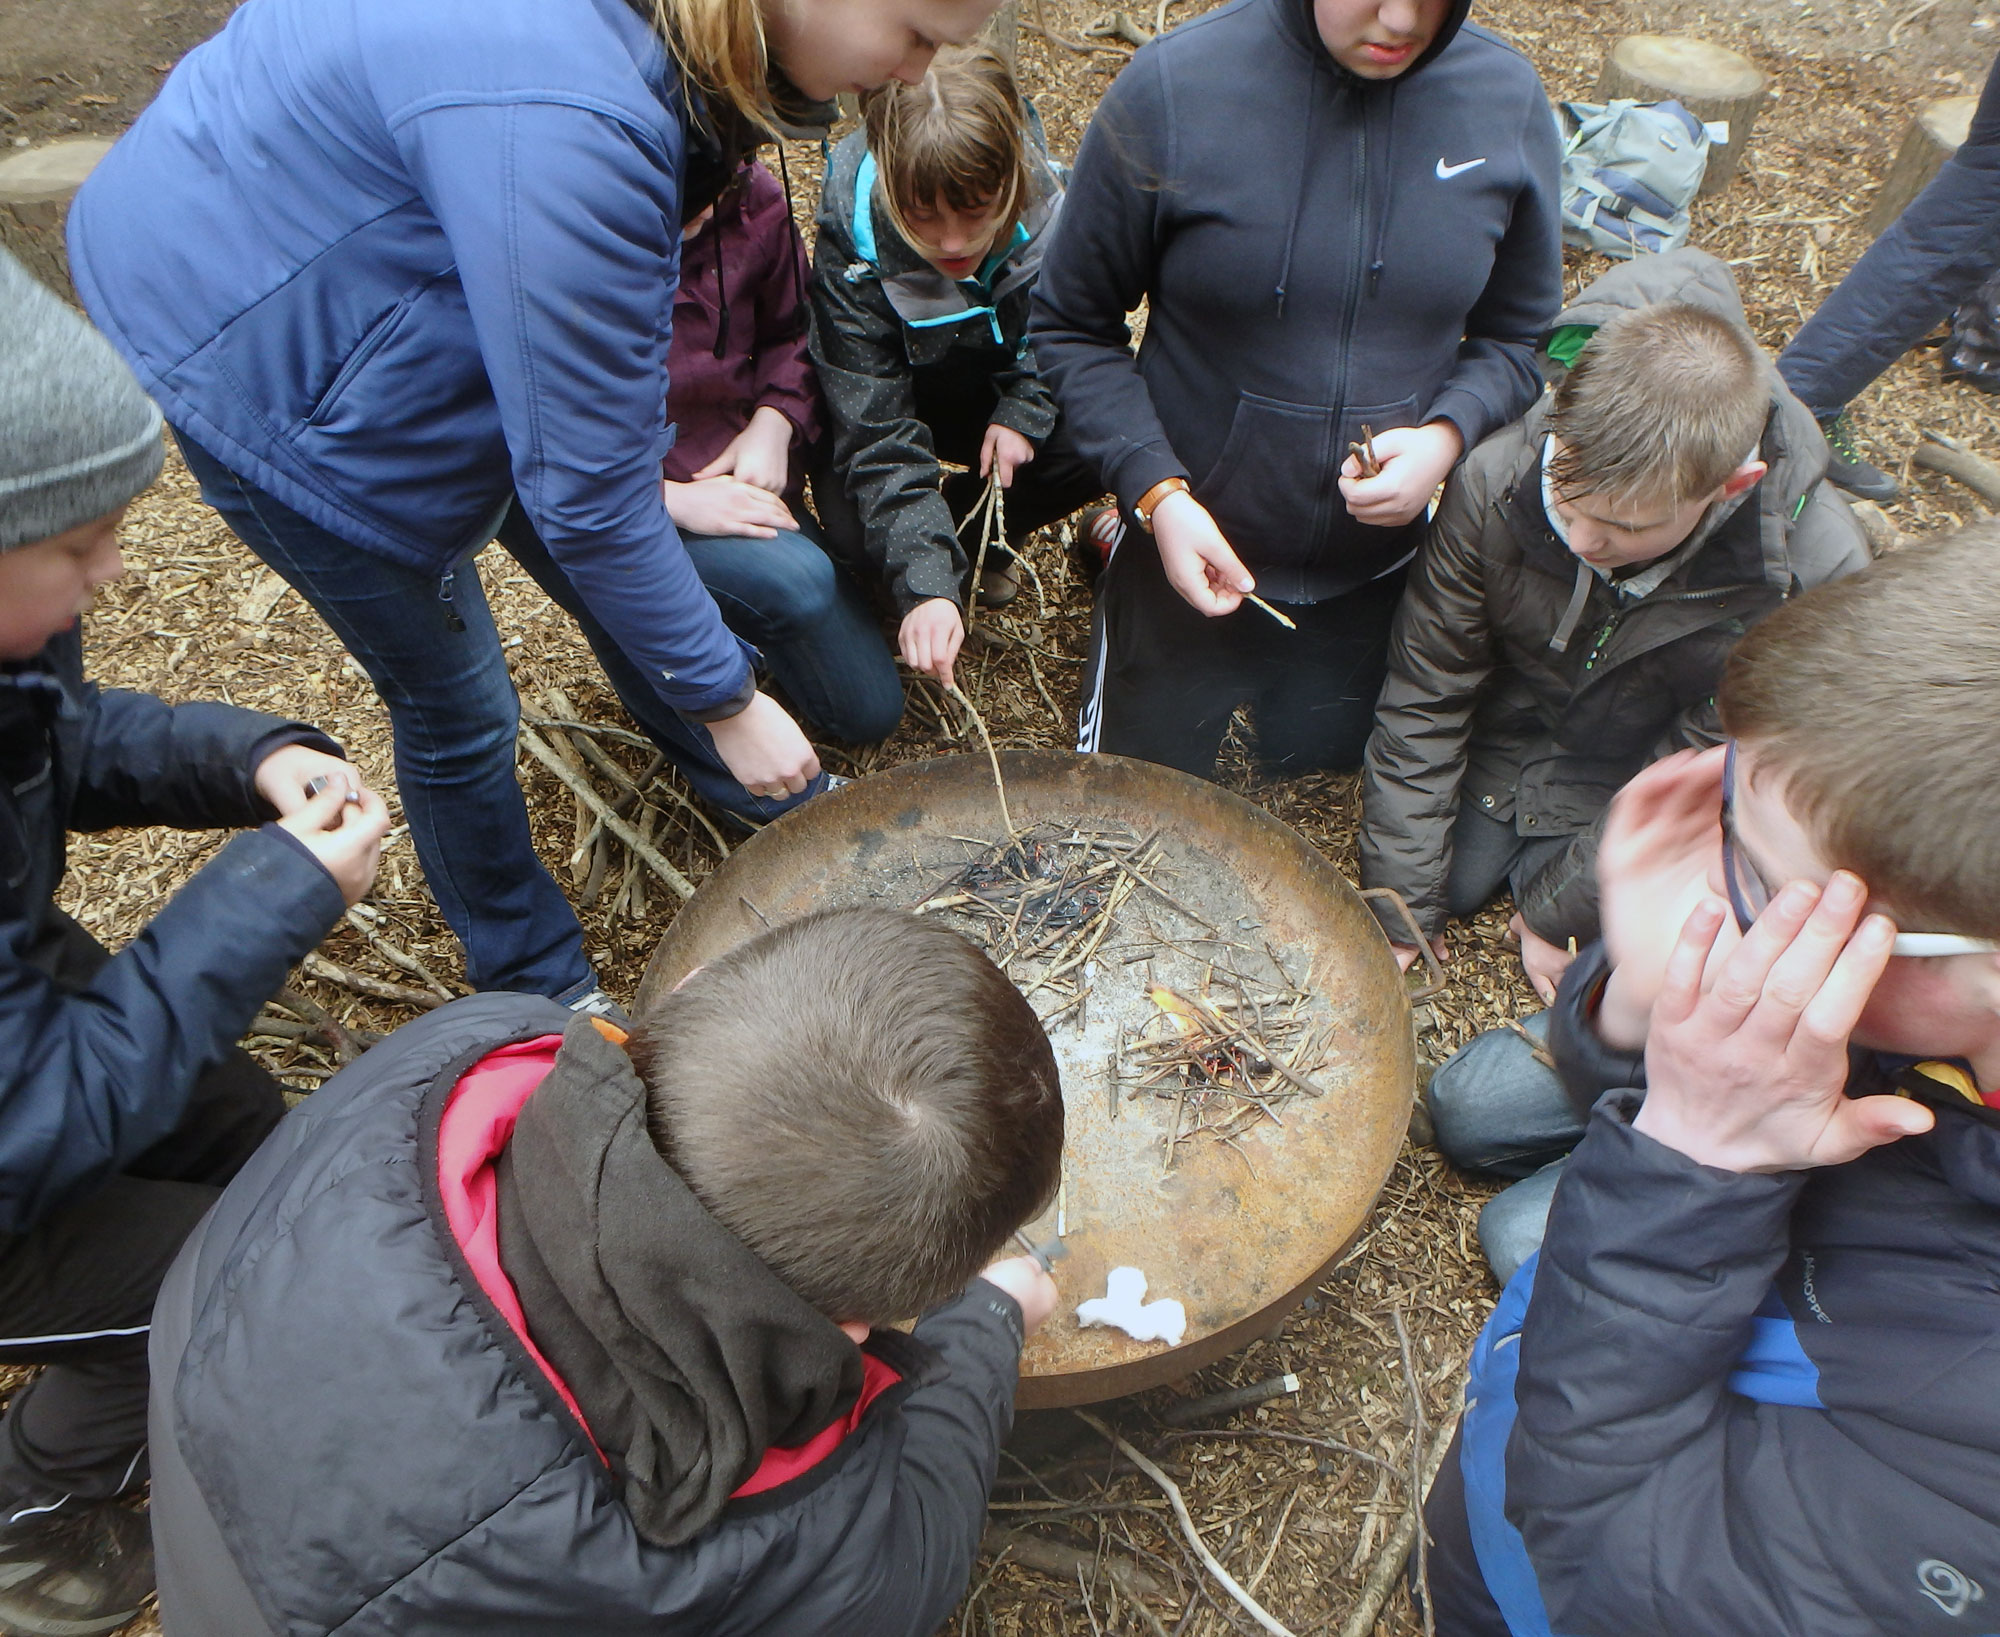 Bushcraft in the Yorkshire Dales